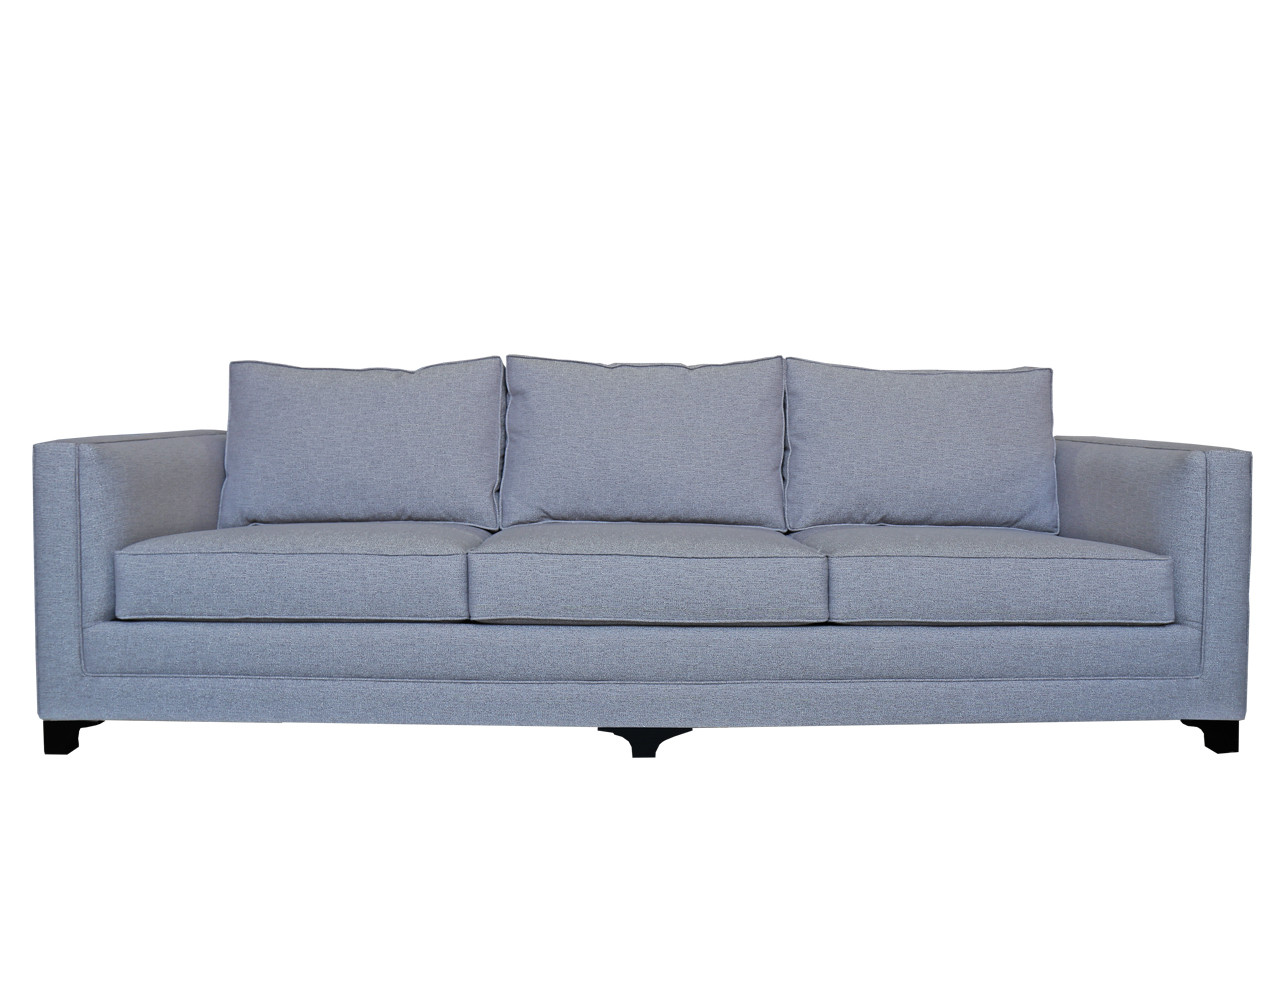 Made Sofa Shop Geovani Sofa